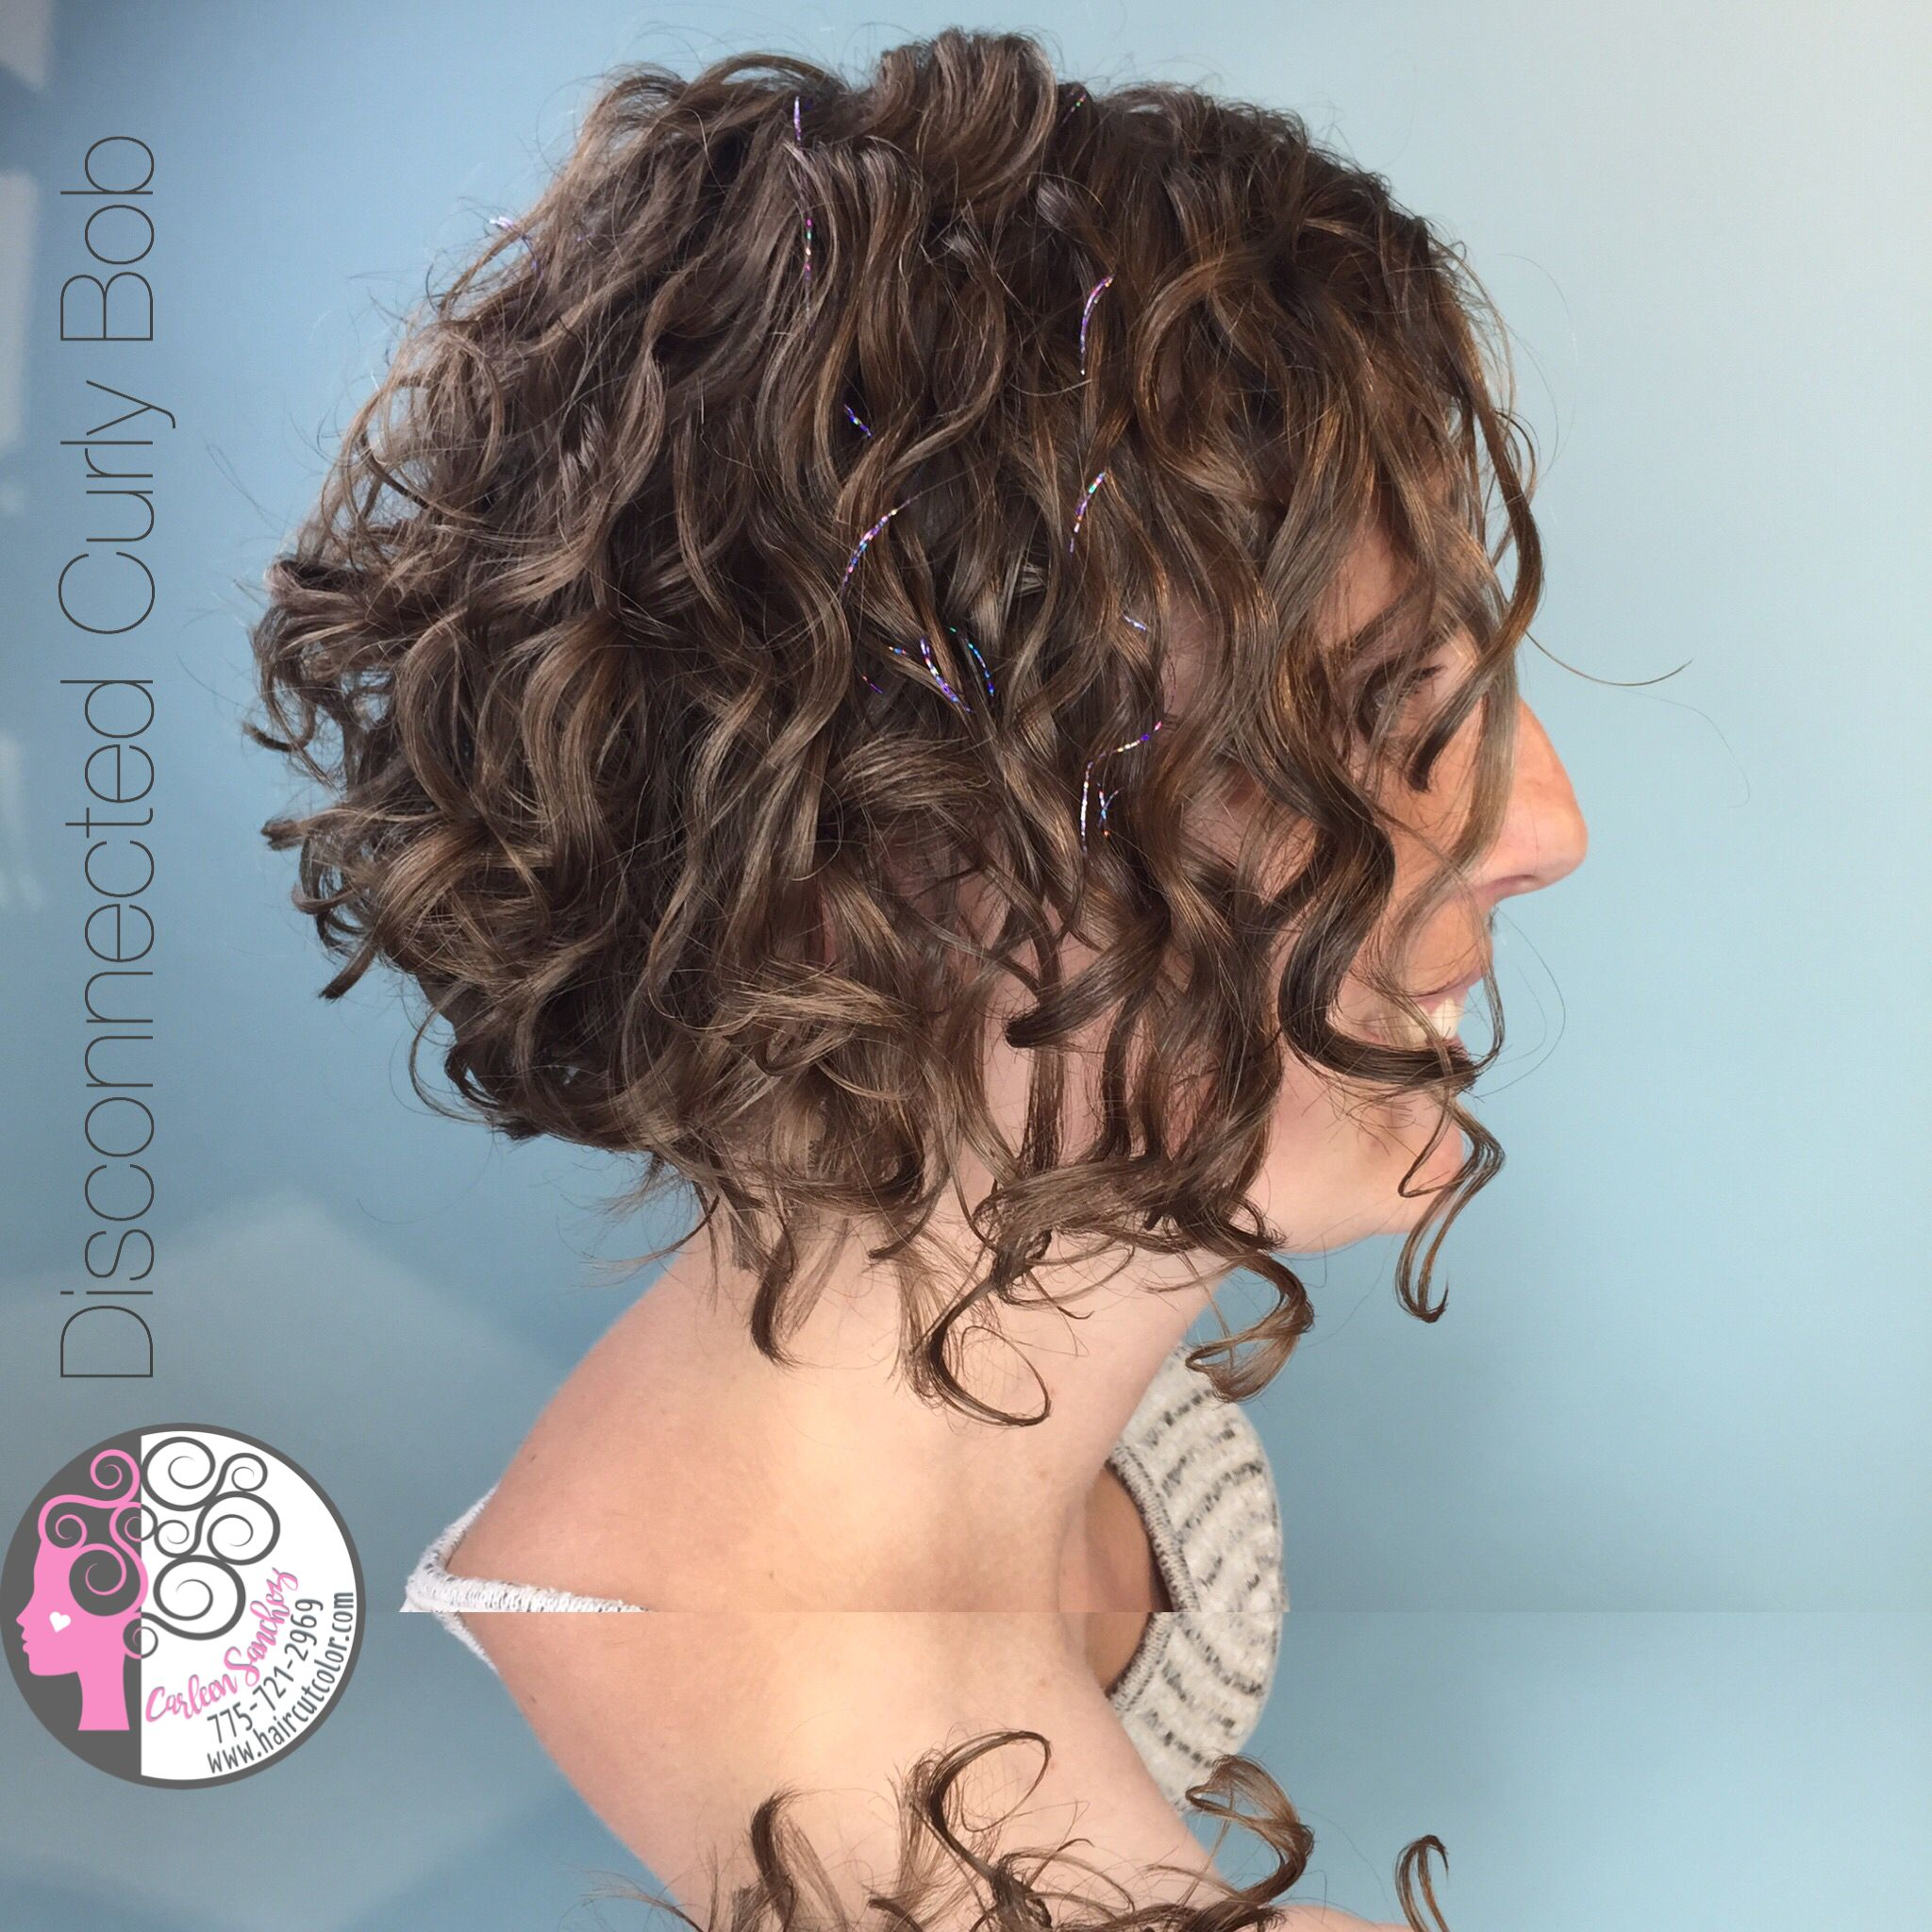 Short Bob naturally curly hair by Carleen Sanchez Nevada's Curl Expert www.haircutcolor.com 775.721.2969